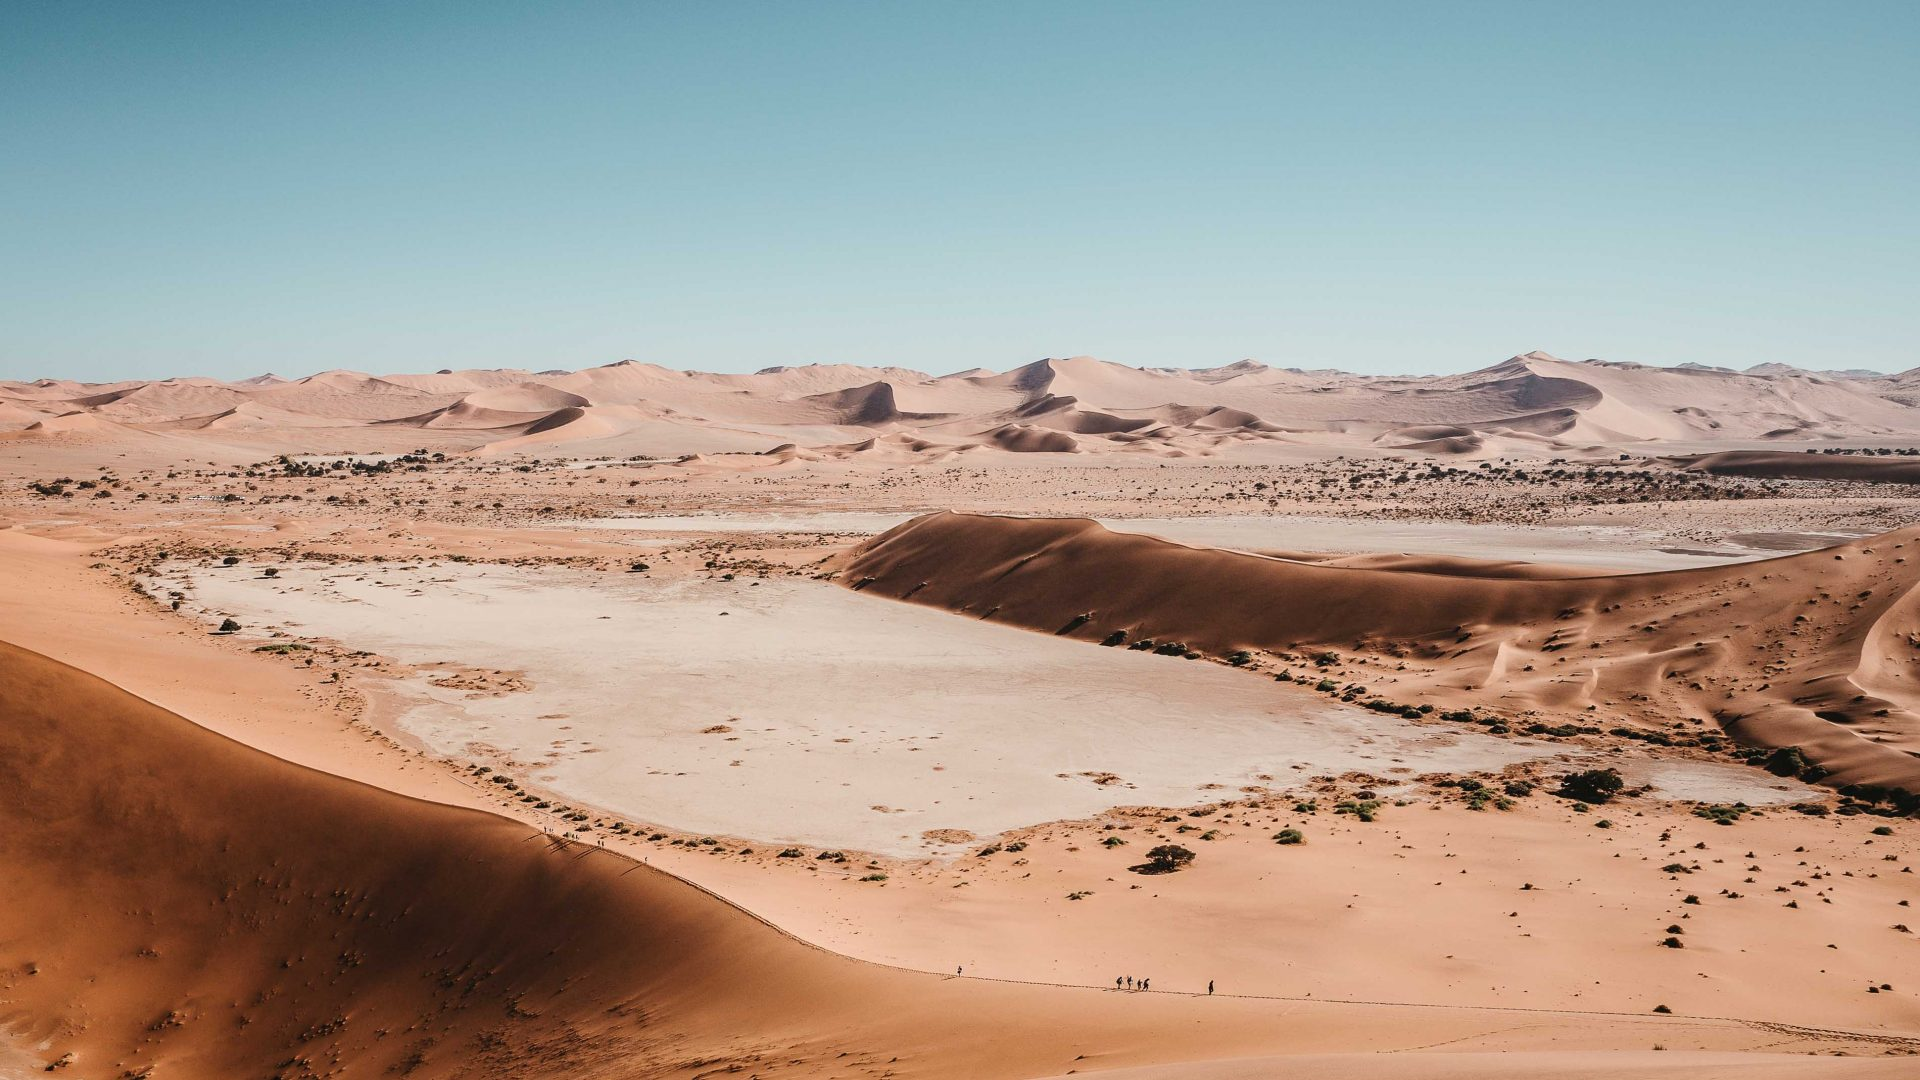 Namibia's Namib Desert, home of the world-famous sand dunes.